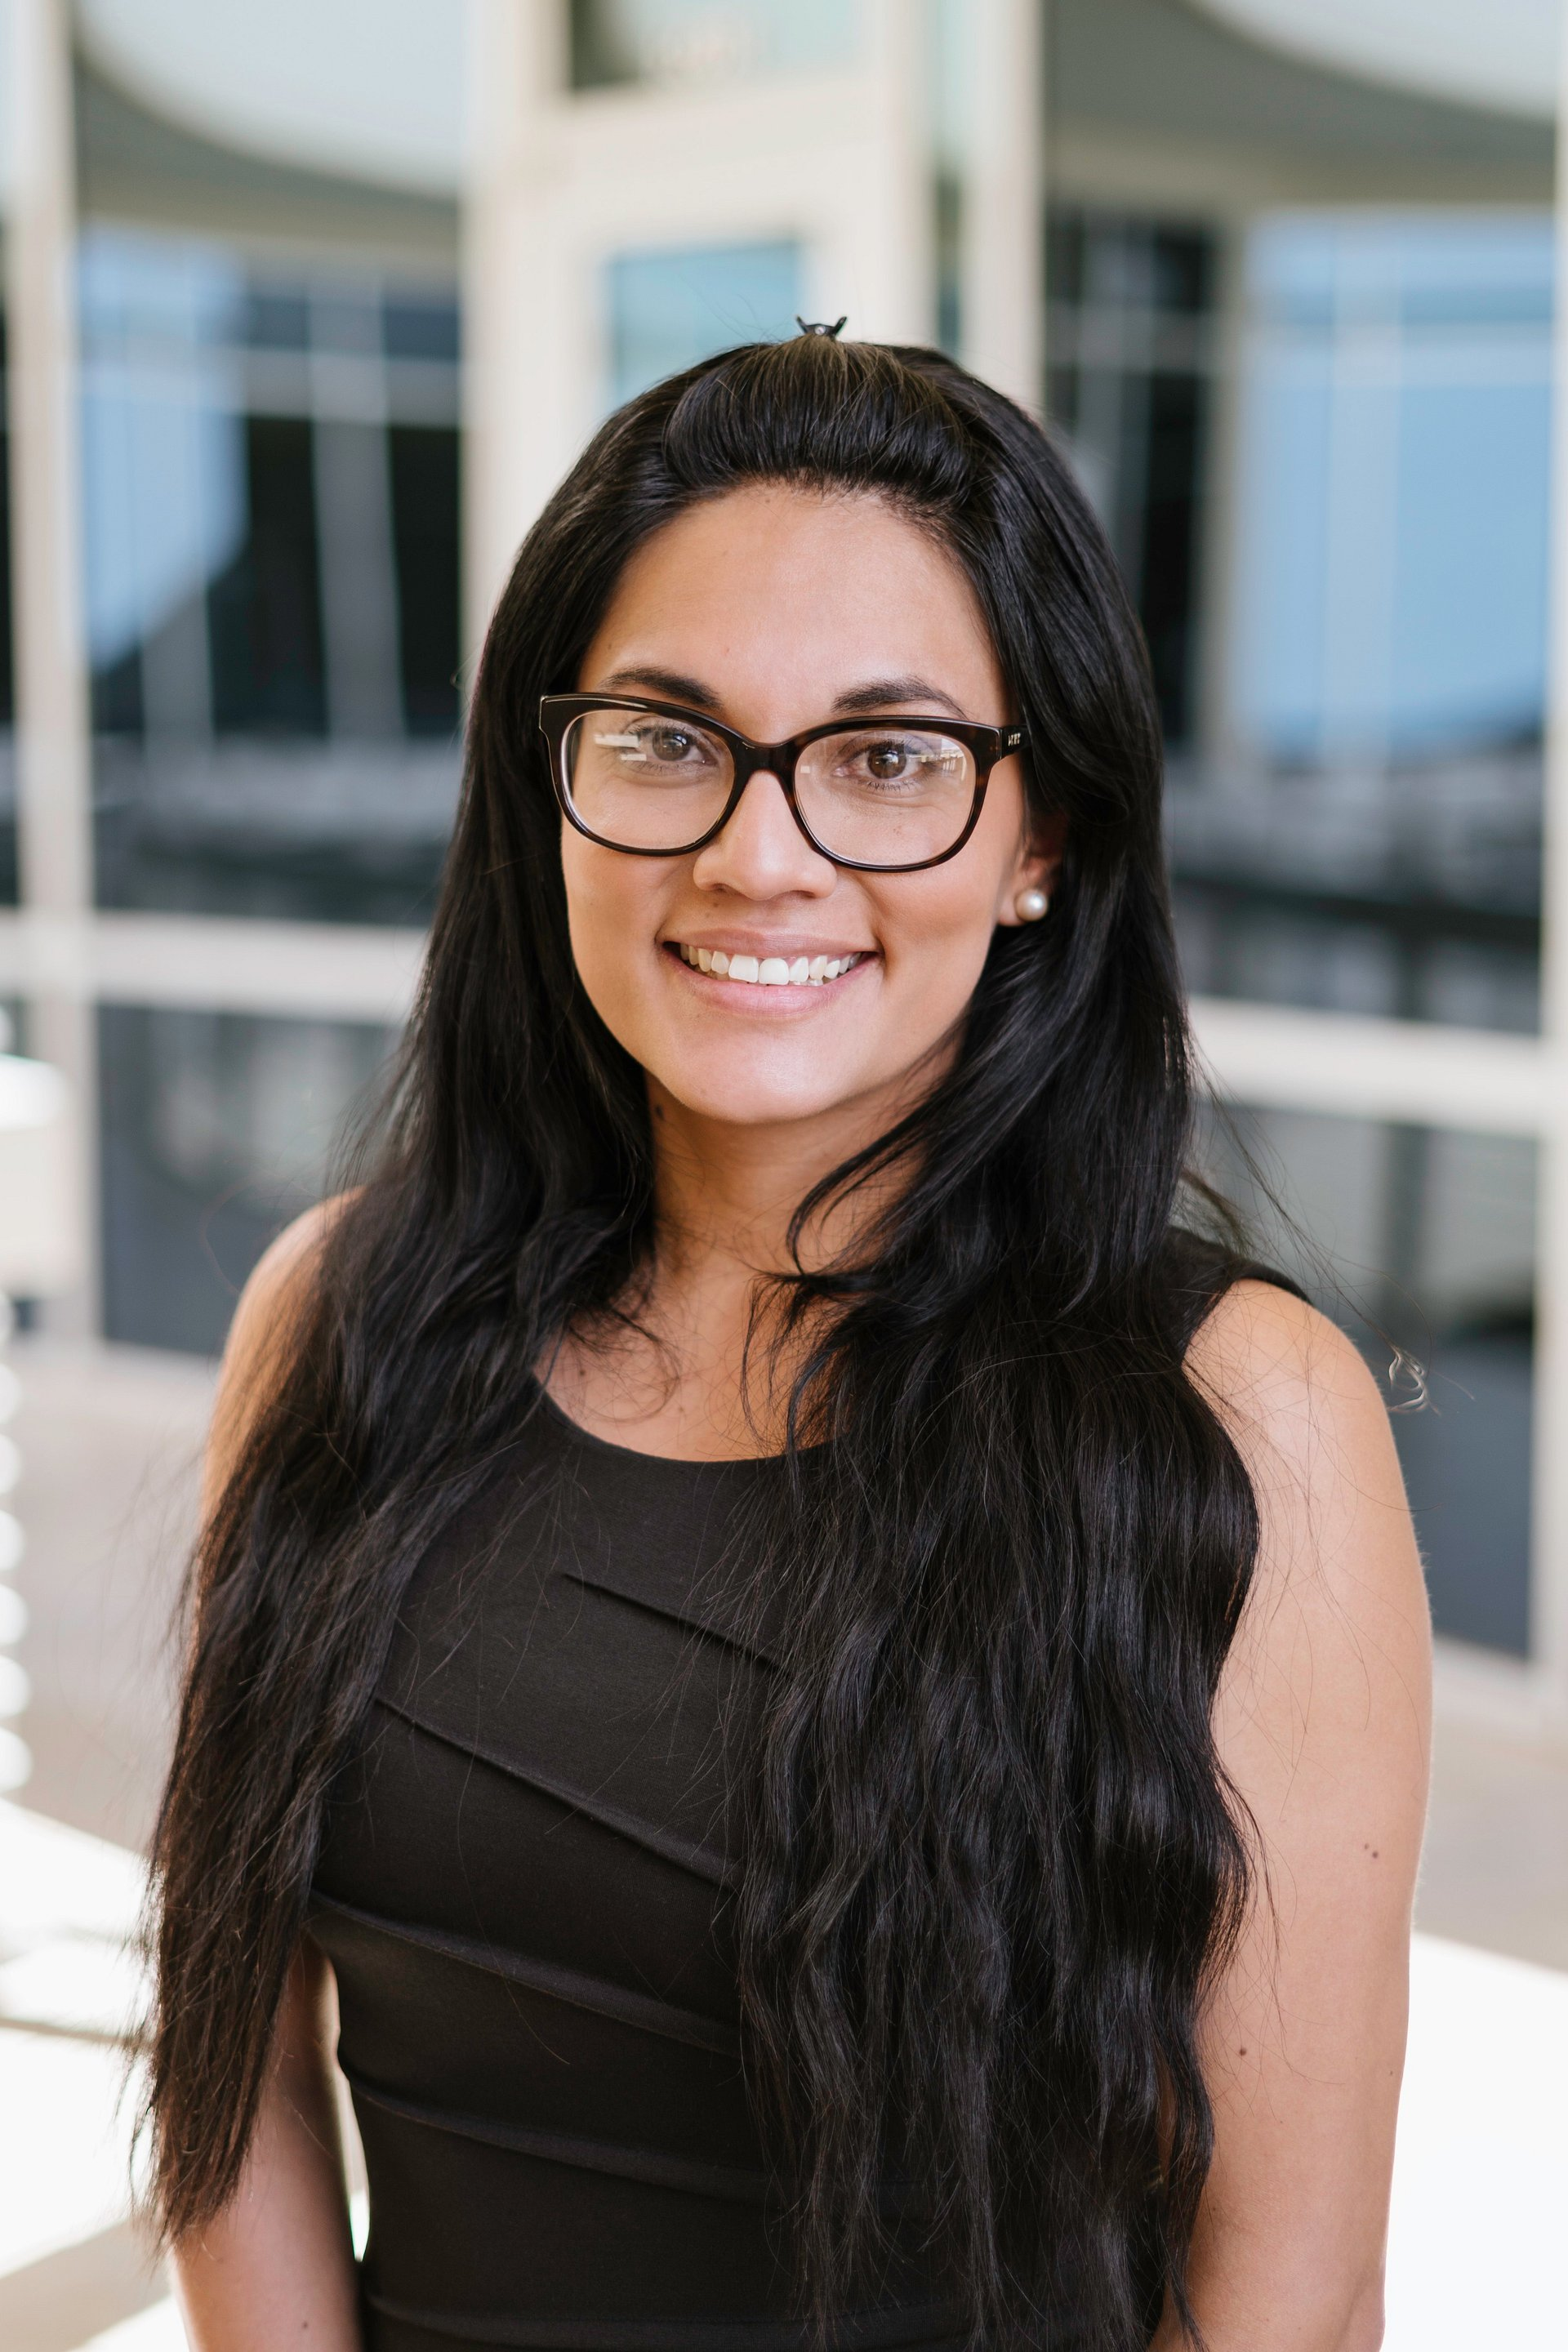 Dalila Sanchez Nava Affiliates with the Chandler Office of Coldwell Banker Residential Brokerage